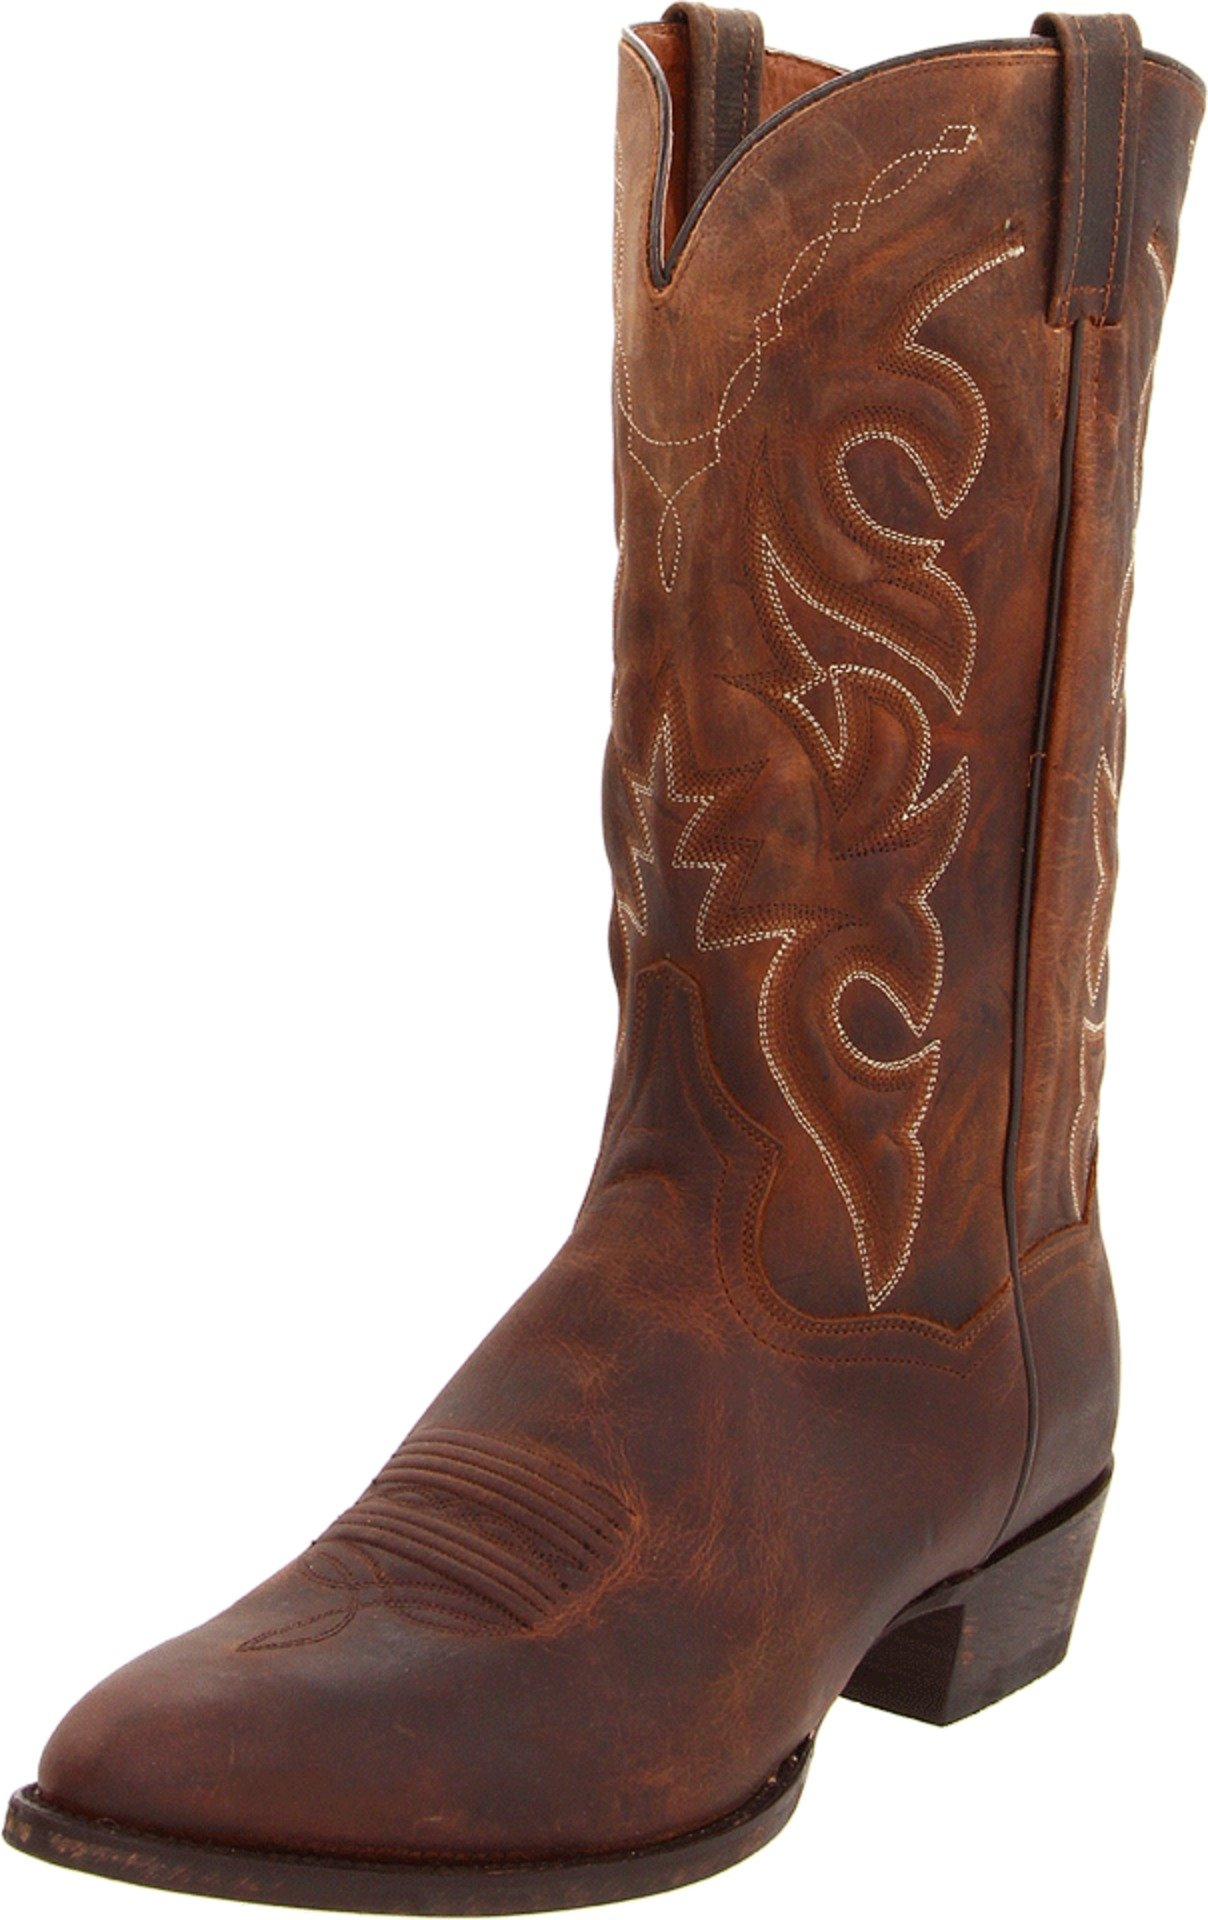 Dan Post Men's Renegade Western Boot,Bay Apache,11 D US